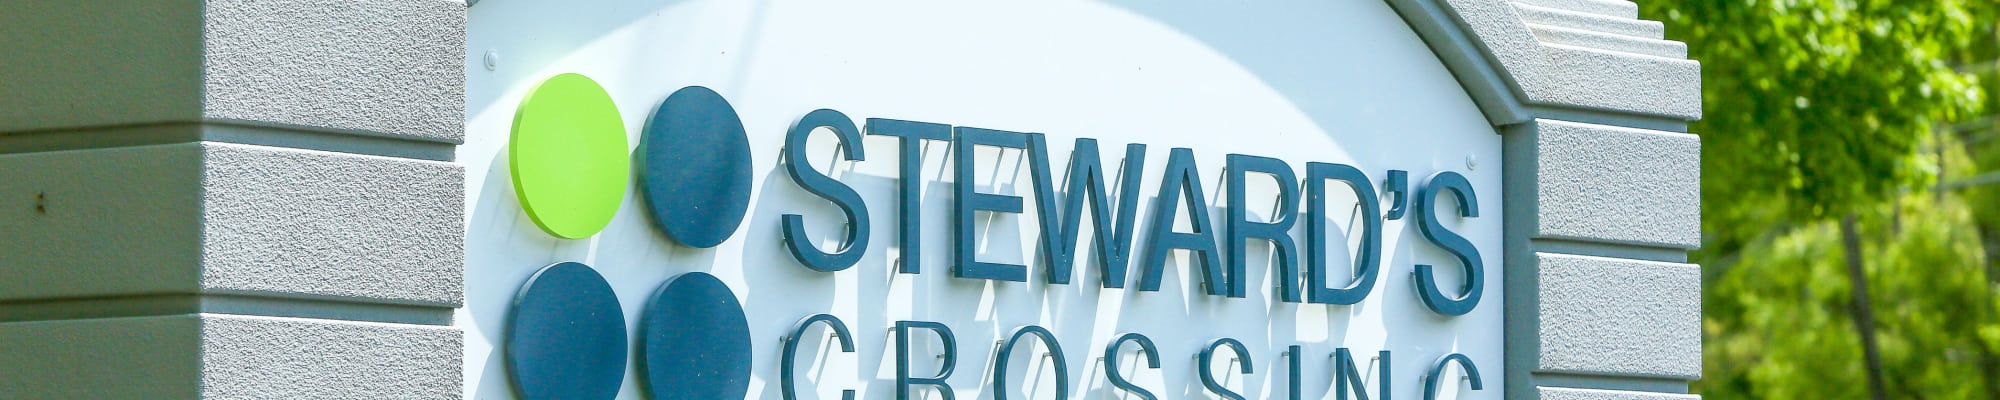 Schedule a tour at Steward's Crossing Apartment Homes in Lawrenceville, New Jersey